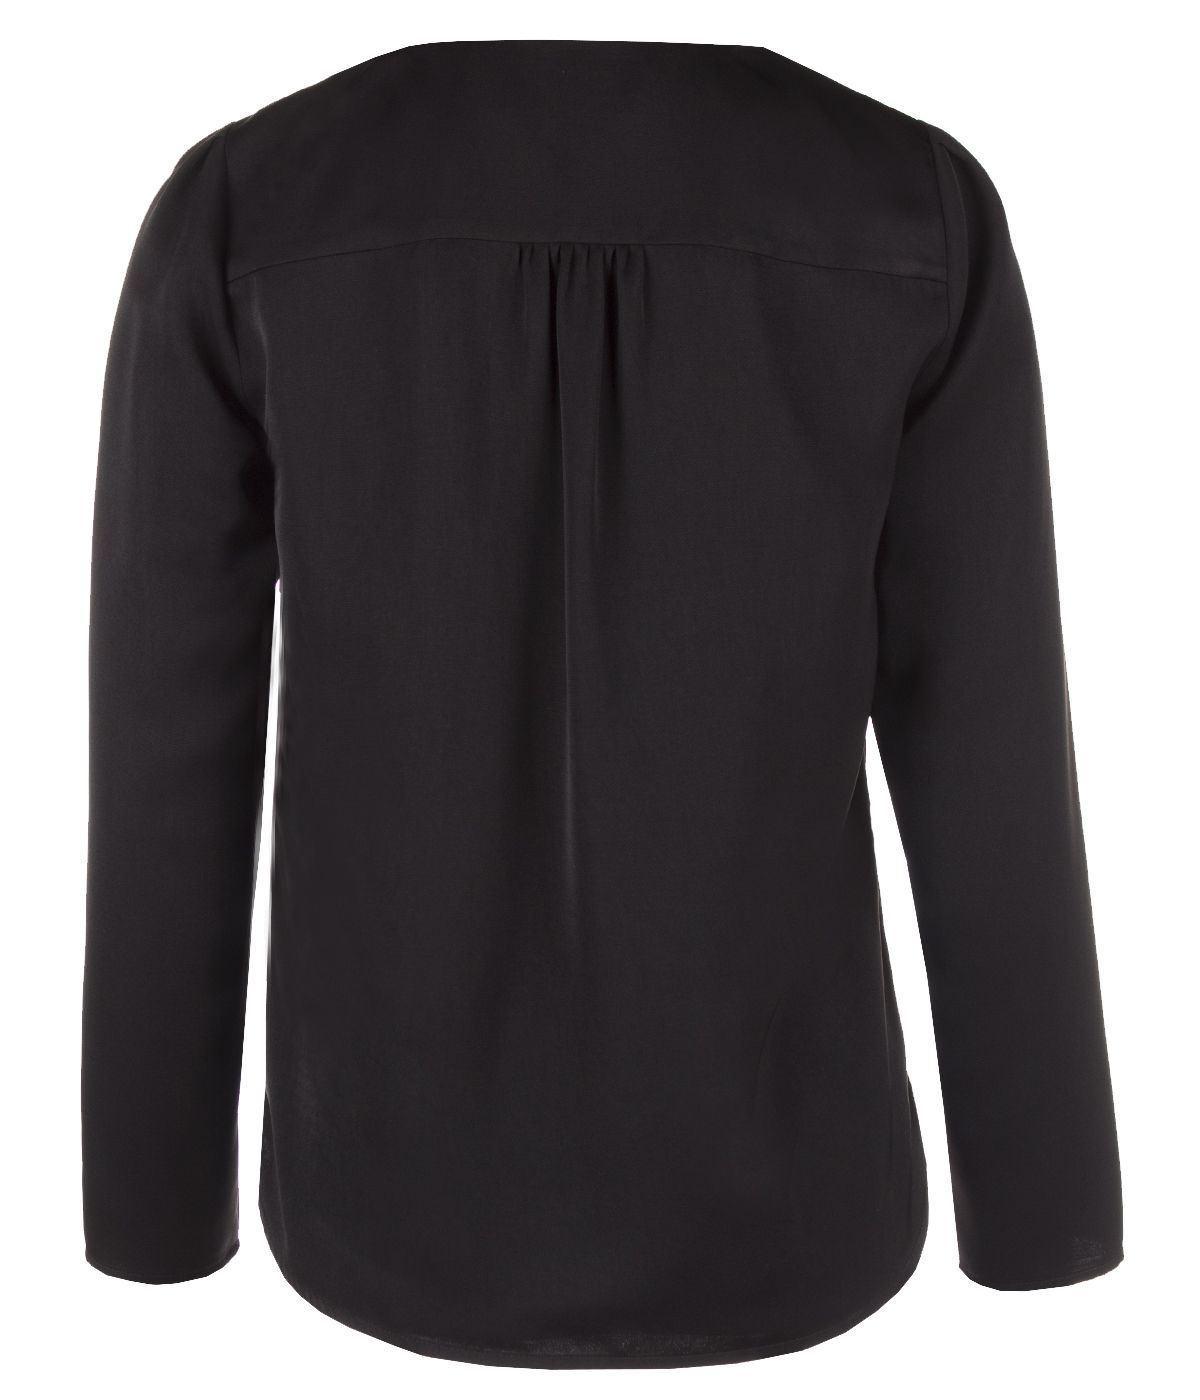 BLACK BLOUSE WITH LONG SLEEVES 1